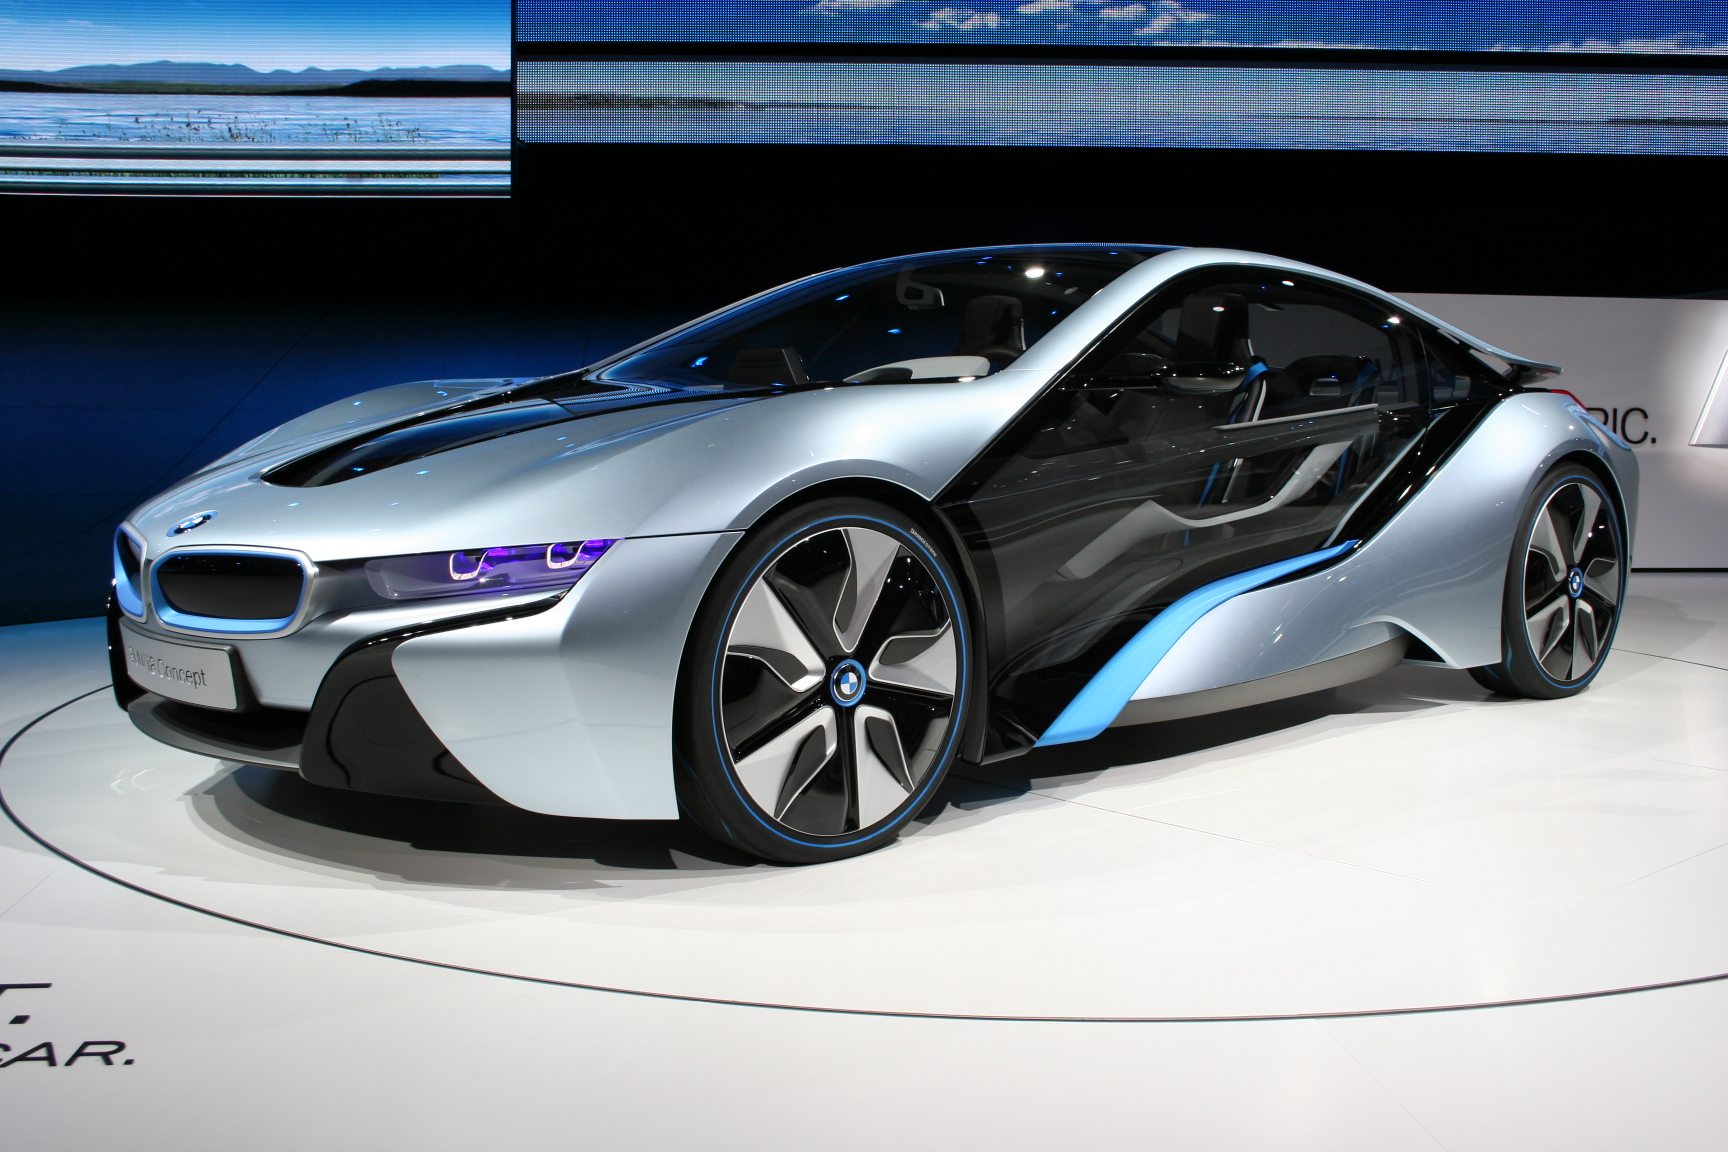 file bmw i8 concept wikimedia commons. Black Bedroom Furniture Sets. Home Design Ideas